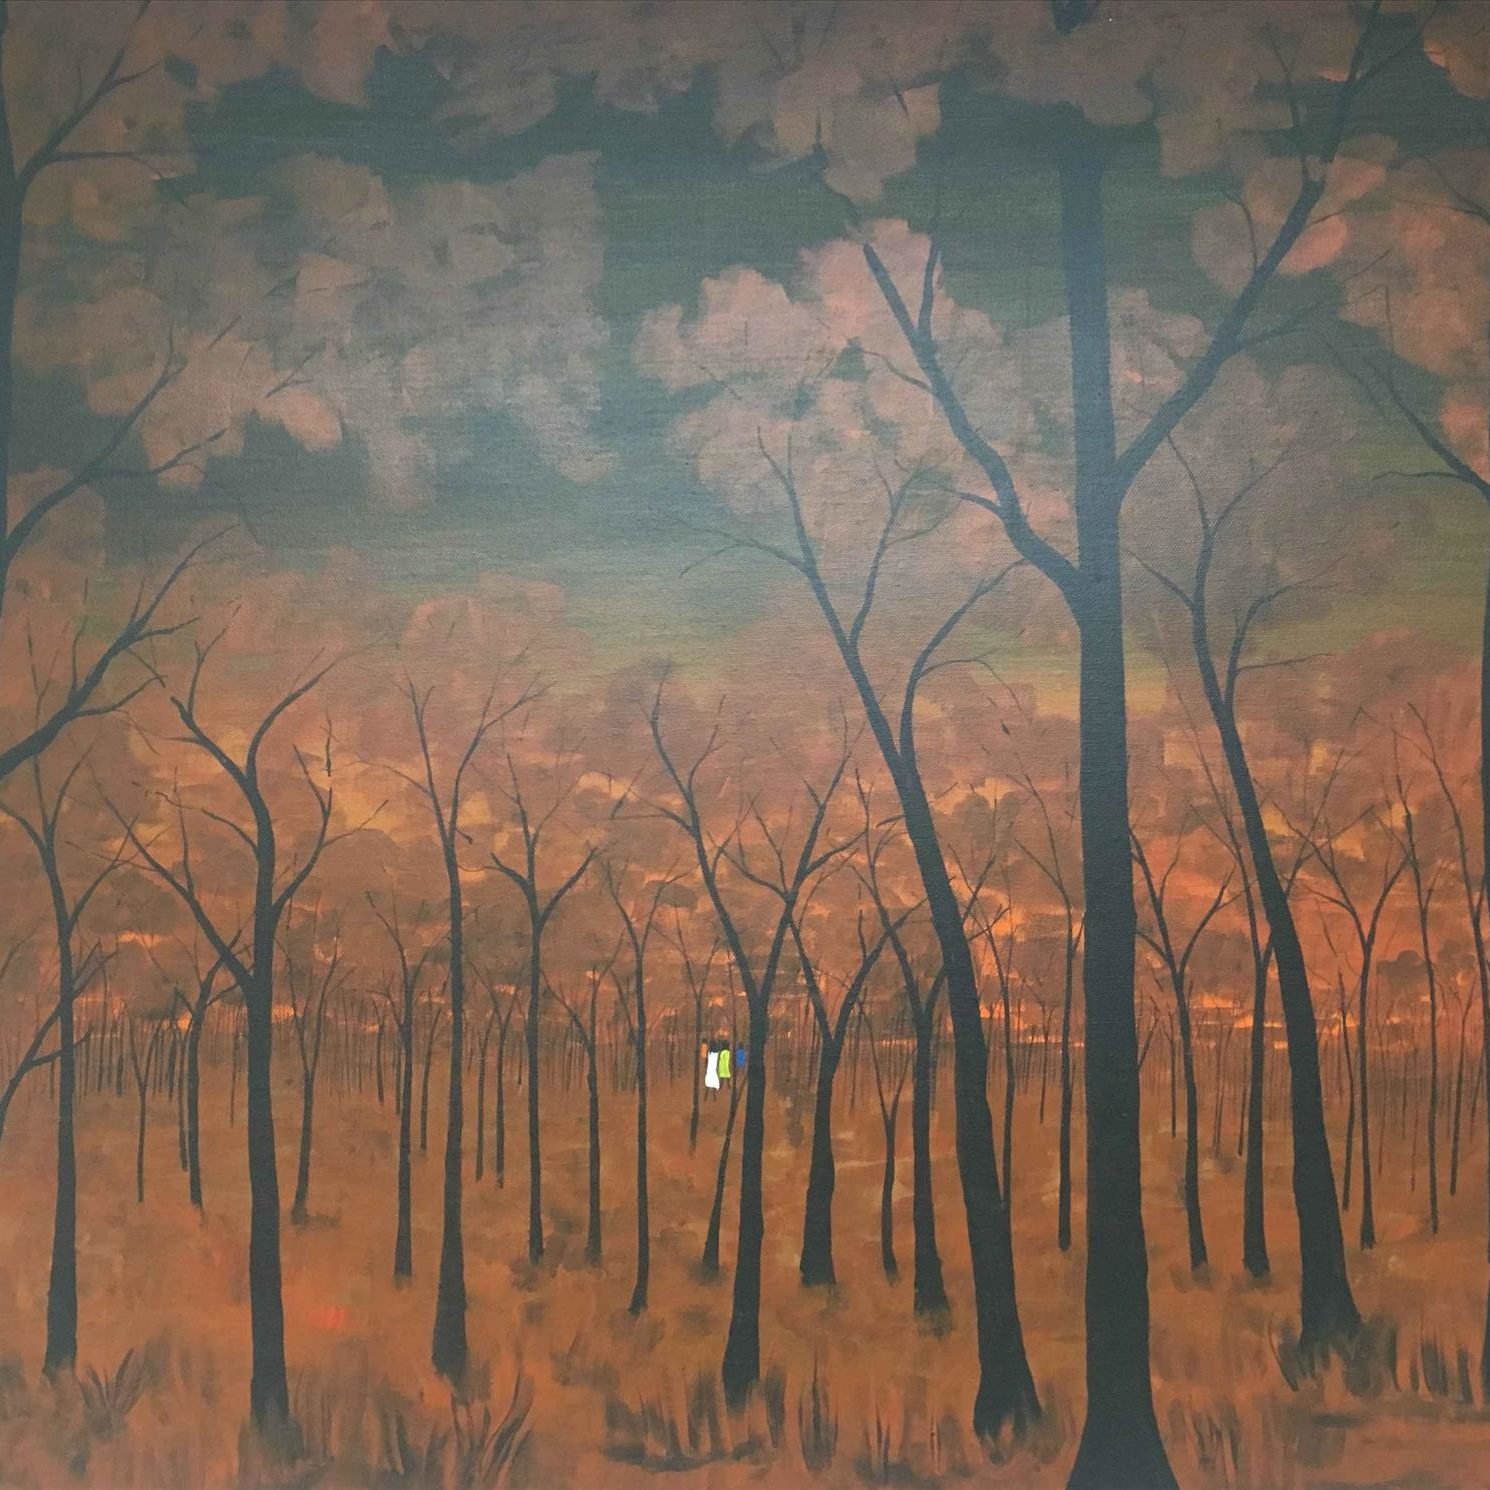 Extra Large Landscape - Painting - James  Archer Djunkinburri